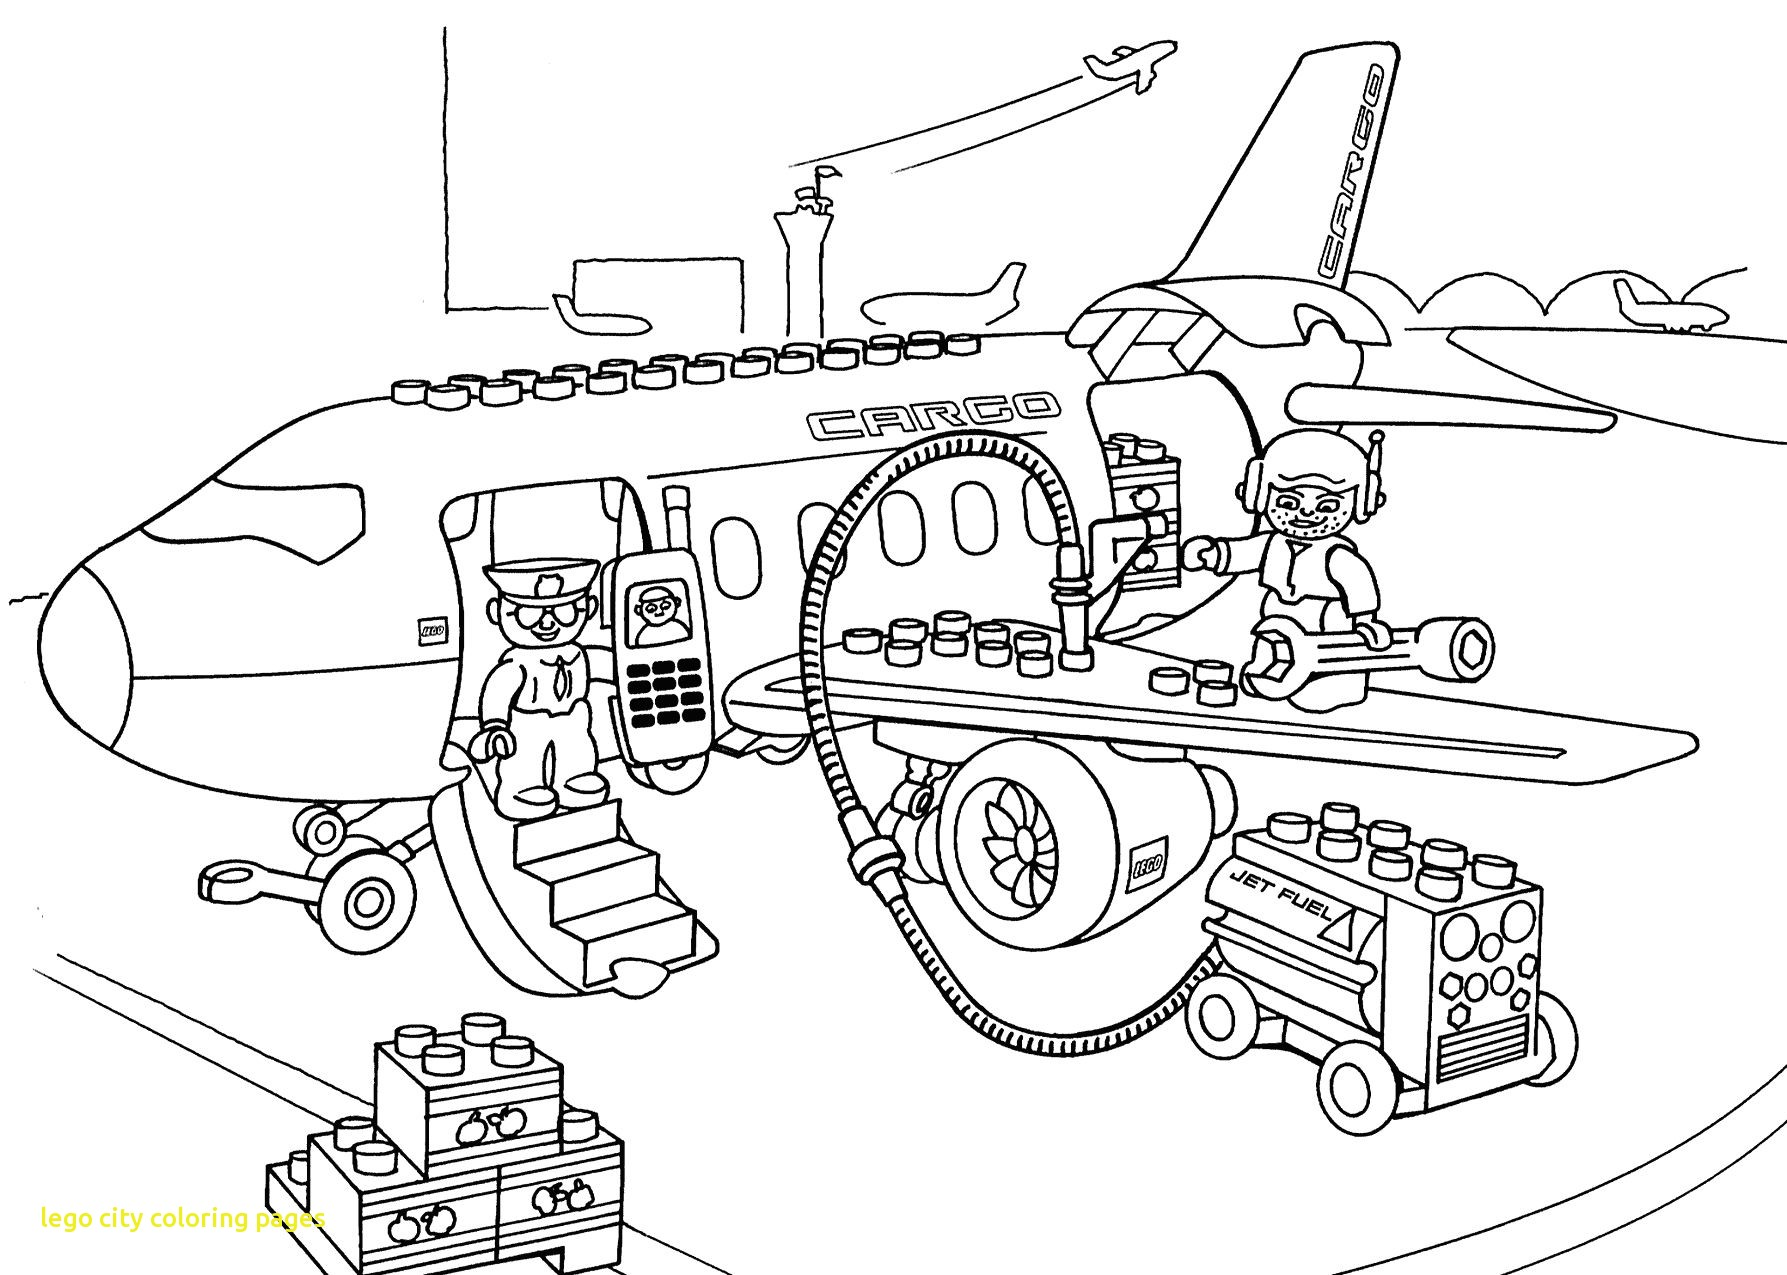 rescue truck coloring pages lego fire truck coloring pages at getcoloringscom free rescue coloring pages truck